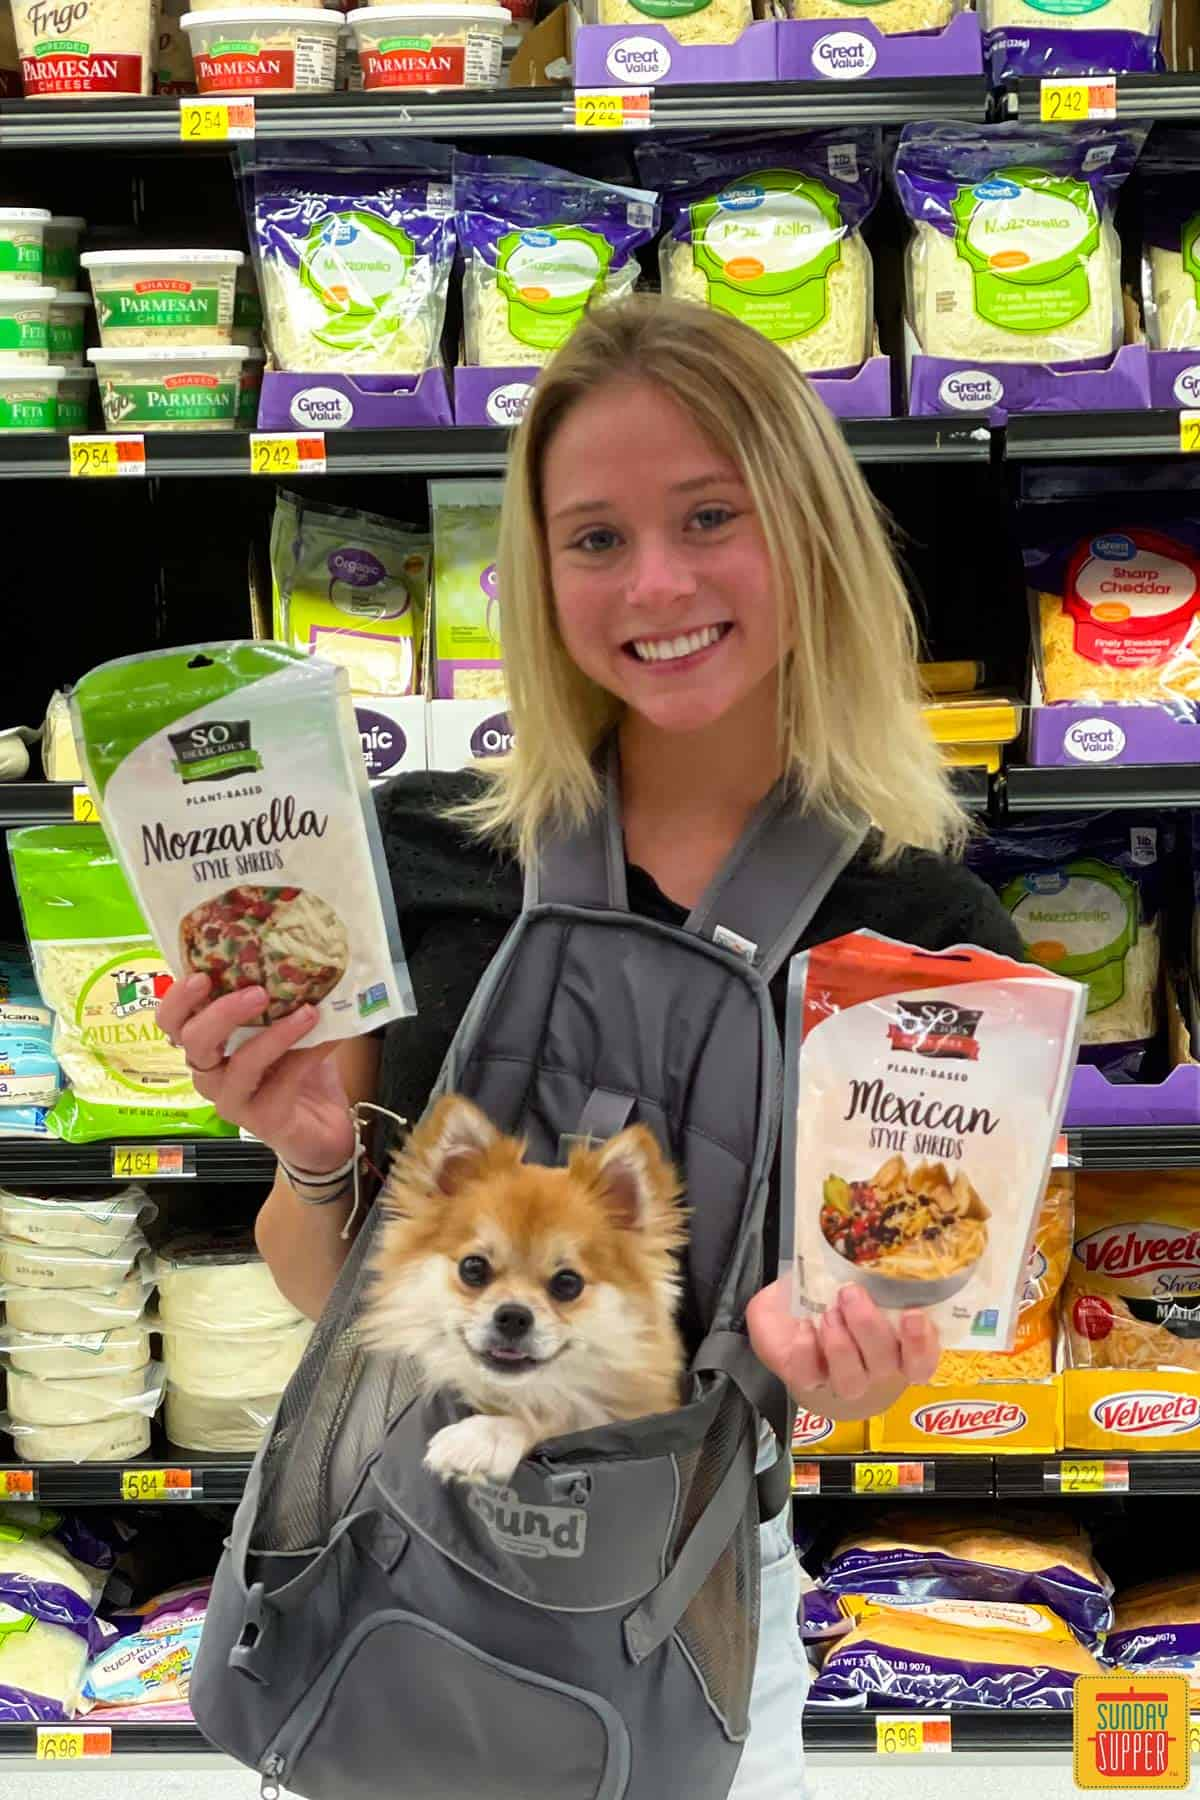 Izzy at Walmart with her dog holding two bags of Plant-based shreds by So Delicious